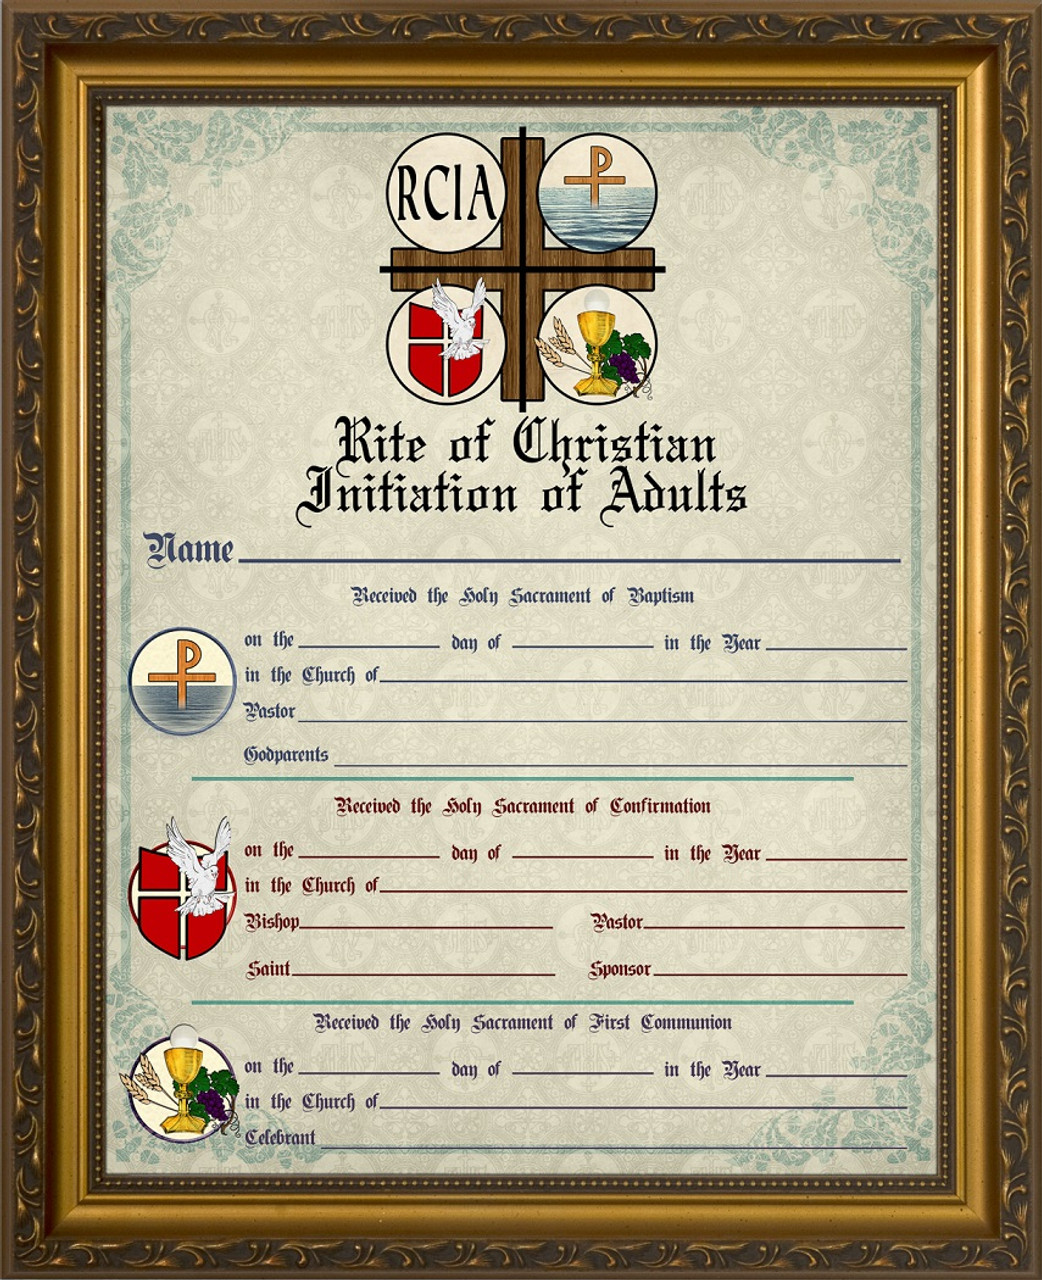 Rcia Sacrament Certificate Of Initiation In Gold Frame Catholic To